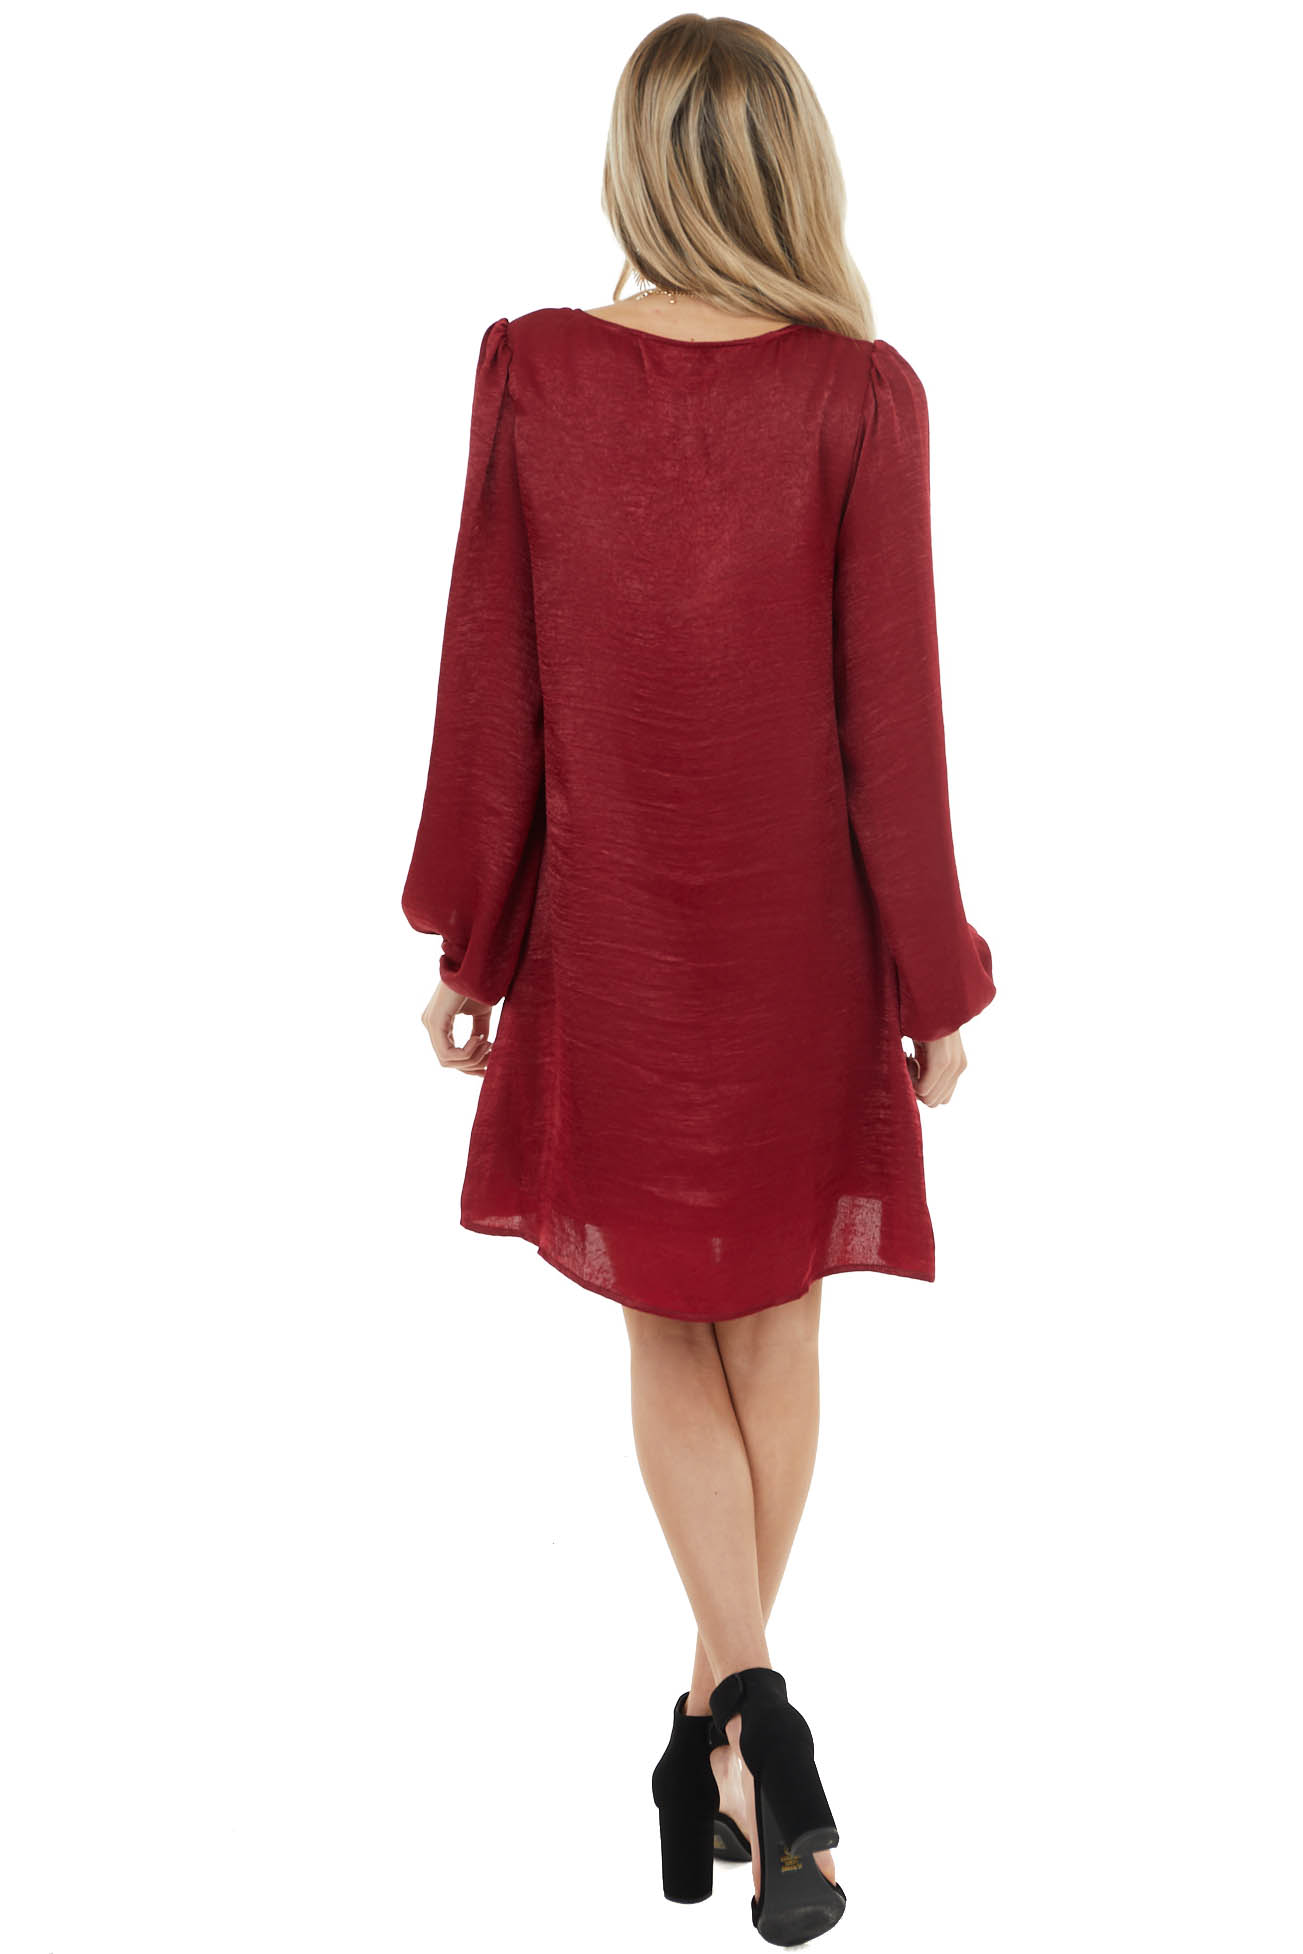 Burgundy Satin Relaxed Fit Dress with Long Bubble Sleeves